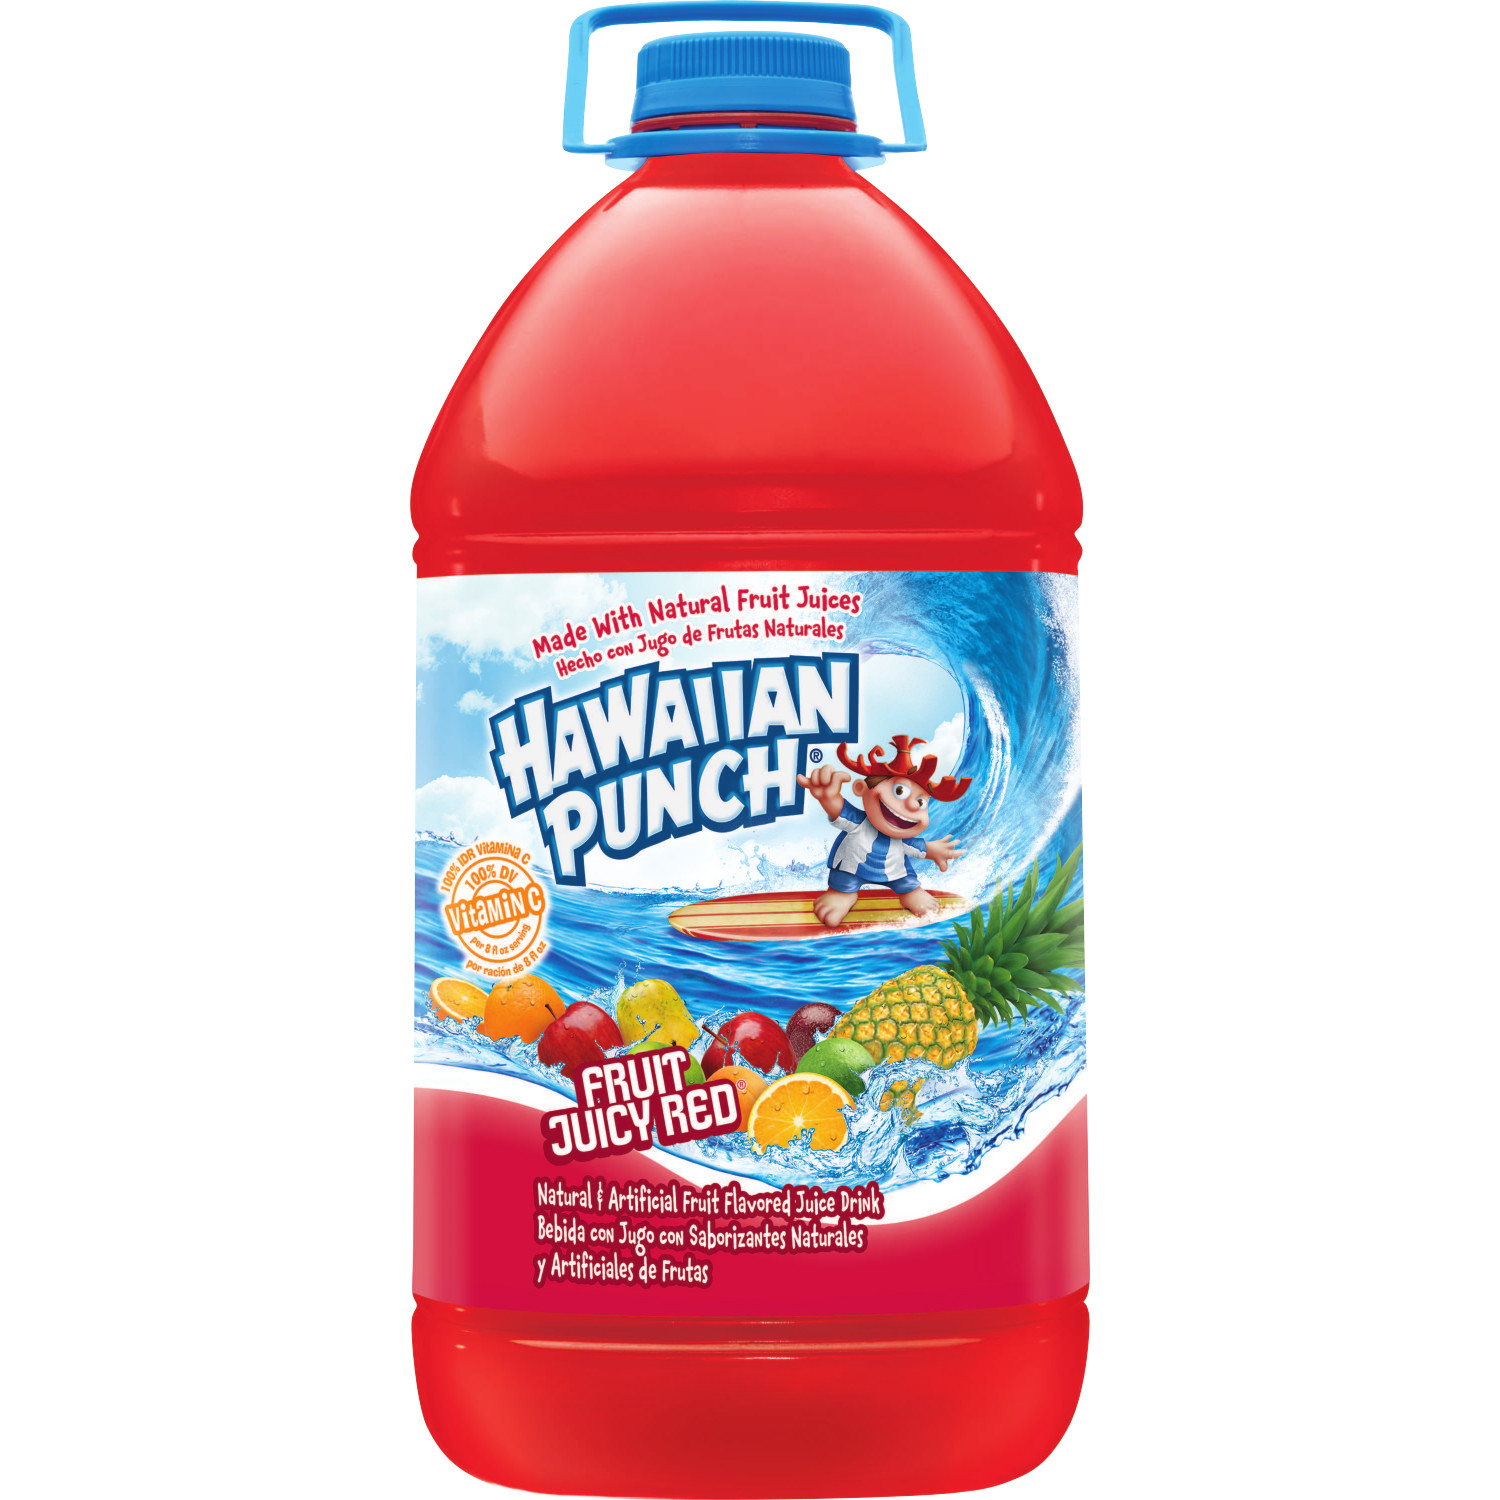 Hawaiian Punch Juice, Juicy Red, 128 Fl Oz, 1 Count